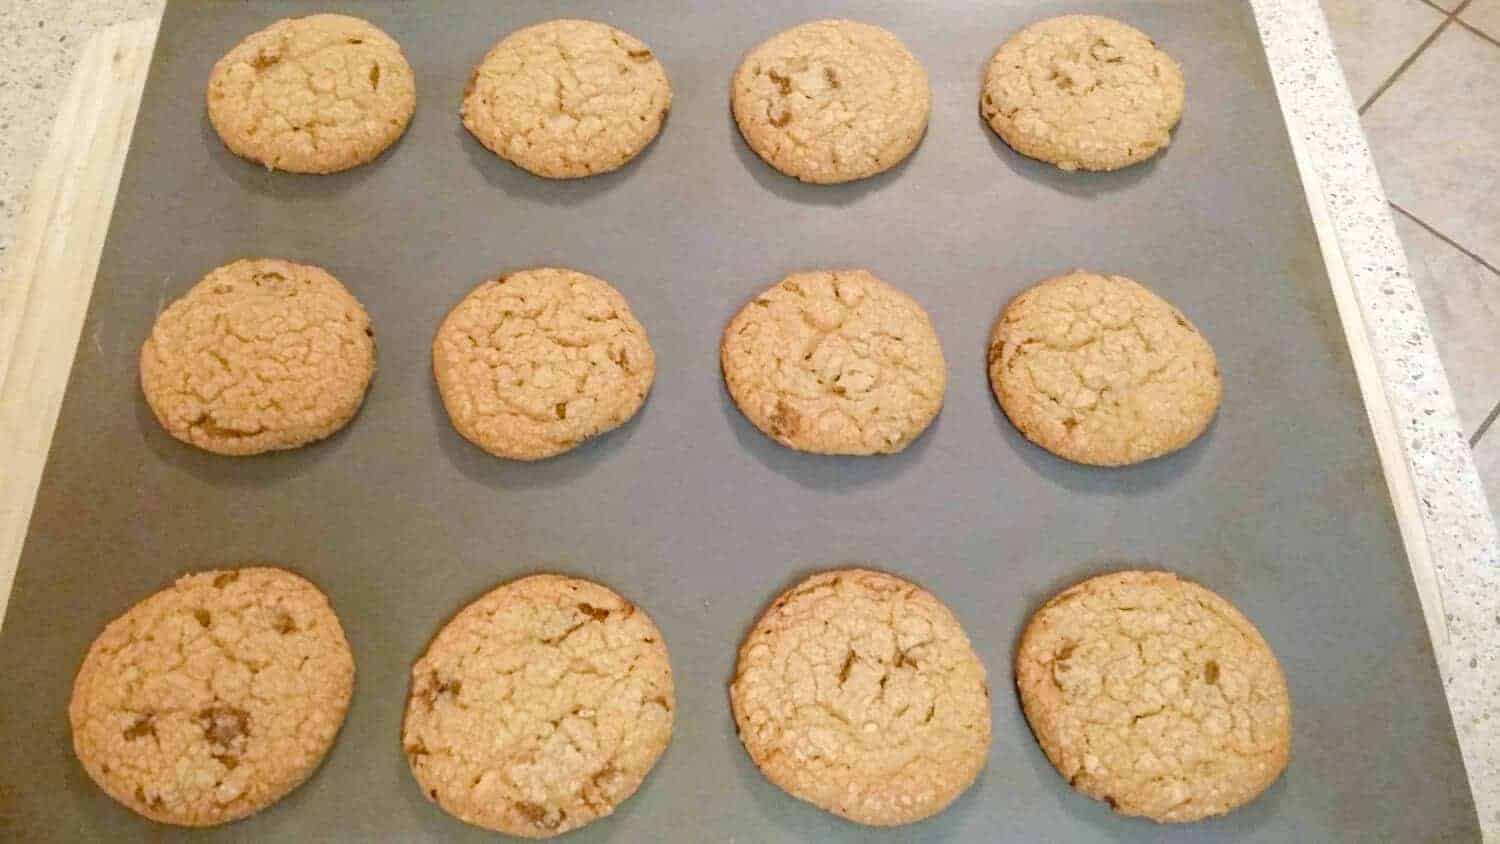 Peppermint Carob Pecan Cookies baked to perfection